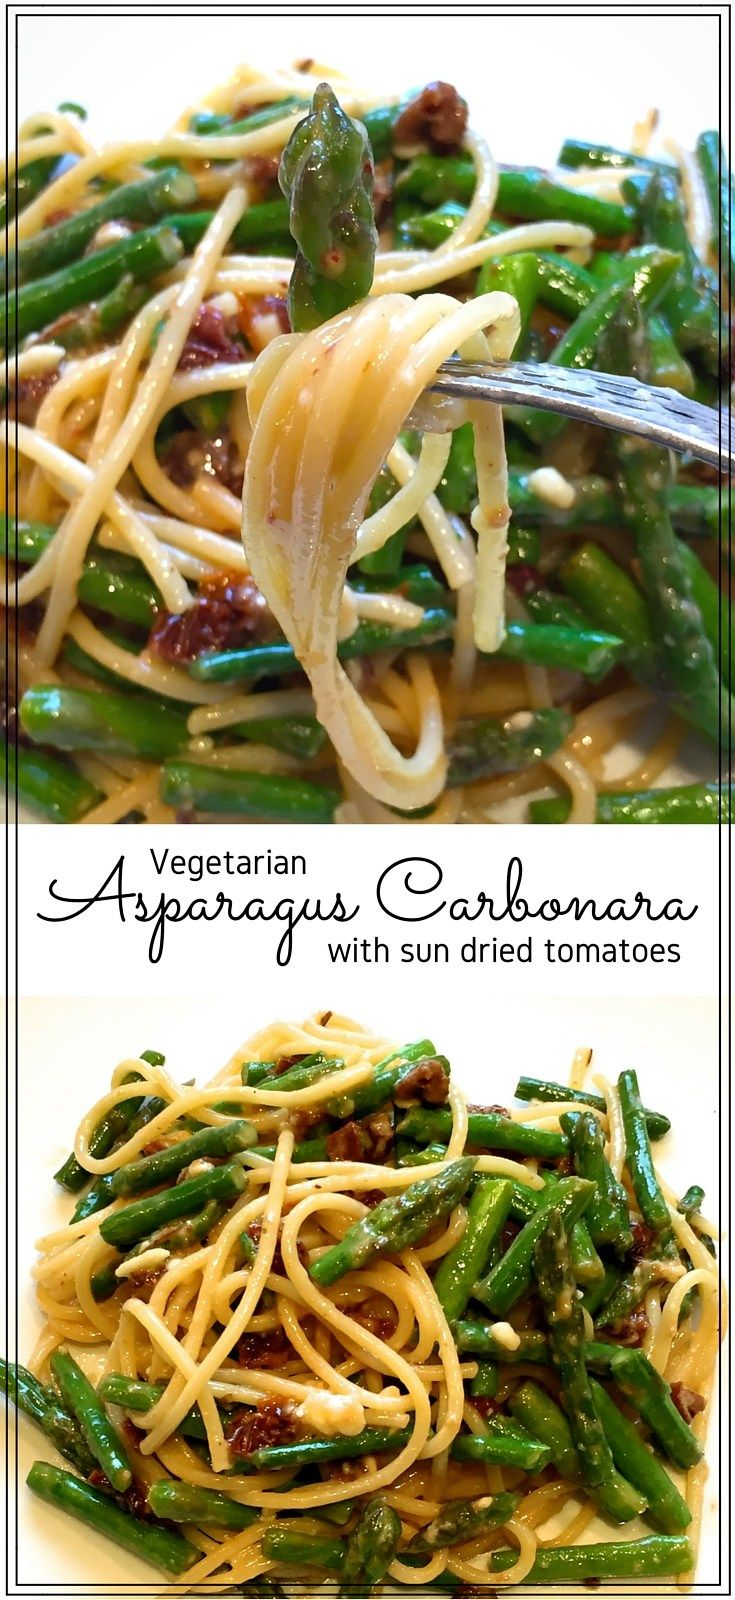 Asparagus carbonara - Rich & tasty, this quick & easy pasta dinner is a delicious way to use fresh, seasonal asparagus. Savoury sun dried tomatoes make this a vegetarian treat. #pasta #quickmeals #easyrecipes #vegetarian #spring #summer #summerfood #asparagus #seasonaleats